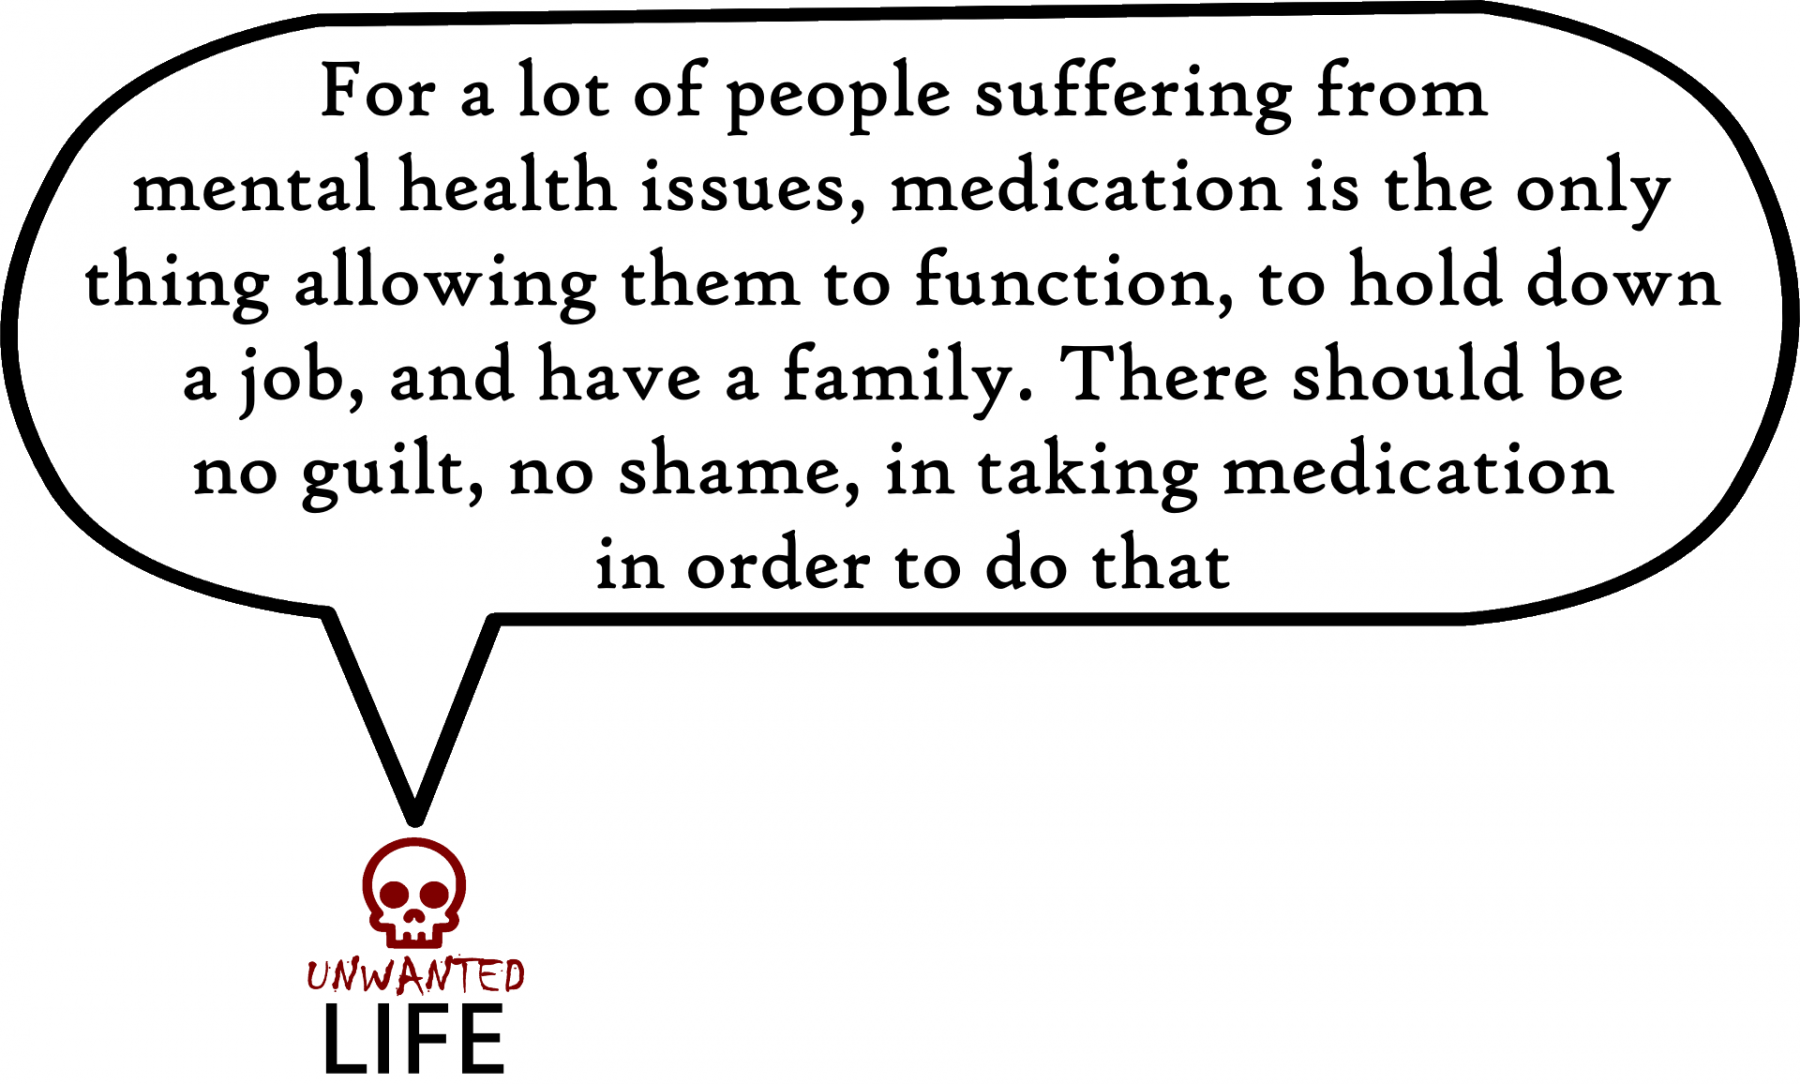 A quote from the blog Unwanted Life's article - What Is The Mentality Behind Pill Shaming?